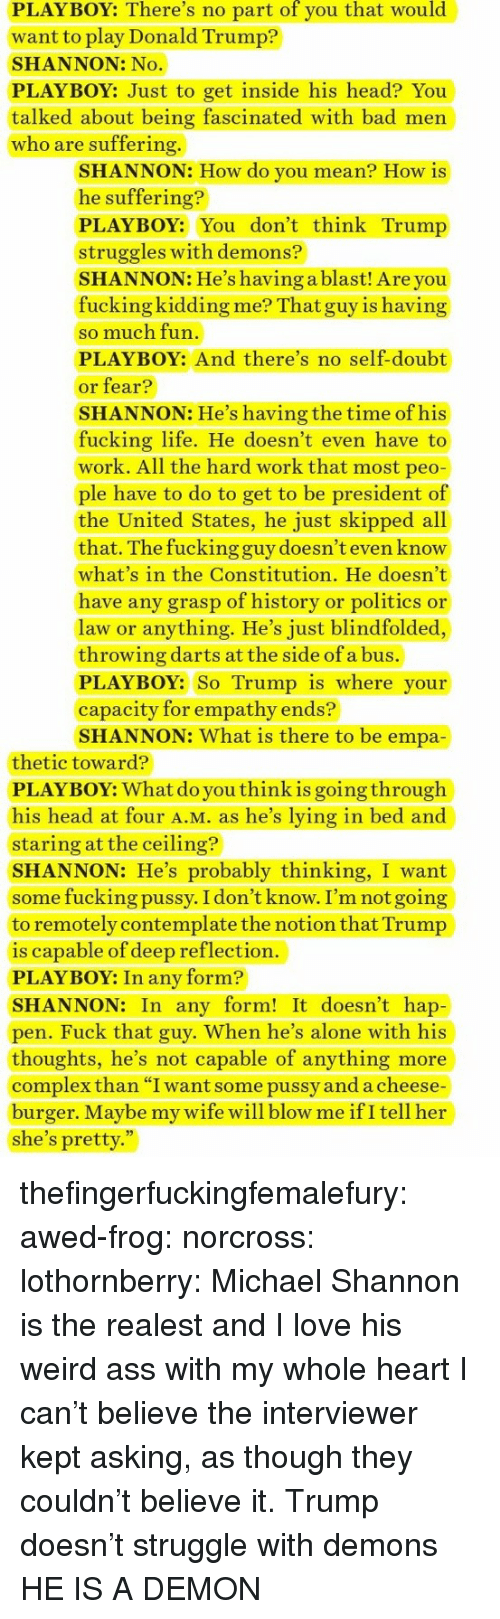 """Lying In Bed: PLAYBOY: There's no part of you that would  want to play Donald Trump?  SHANNON: No  PLAYBOY: Just to get inside his head? You  talked about being fascinated with bad men  who are suffering.  SHANNON: How do you mean? How is  he suffering?  PLAYBOY: You don't think Trump  struggles with demons?  SHANNON: He's having a blast! Are you  fucking kidding me? That guy is having  so much fun  PLAYBOY: And there's no self-doubt  or fear?  SHANNON: He's having the time of his  fucking life. He doesn't even have to  work. All the hard work that most peo  ple have to do to get to be president of  the United States, he just skipped all  that. The fucking guy doesn't even know  what's in the Constitution. He doesn't  have any grasp of history or politics or  law or anything. He's just blindfolded,  throwing darts at the side of a bus.  PLAYBOY: So Trump is where your  capacity for empathy ends?  SHANNON: What is there to be empa  thetic toward?  PLAYBOY: What do you thinkis going through  his head at four A.M. as he's lying in bed and  staring at the ceiling?  SHANNON: He's probably thinking, I want  some fucking pussy. I don't know. I'm not going  to remotely contemplate the notion that Trump  is capable of deep reflection.  PLAYBOY: In any form?  SHANNON: In any form! It doesn't hap  pen. Fuck that guy. When he's alone with his  thoughts, he's not capable of anything more  complex than """"I want some pussy and a cheese  burger. Maybe my wife will blow me ifI tell her  she's pretty."""" thefingerfuckingfemalefury:  awed-frog:  norcross:  lothornberry: Michael Shannon is the realest and I love his weird ass with my whole heart  I can't believe the interviewer kept asking, as though they couldn't believe it.    Trump doesn't struggle with demons HE IS A DEMON"""